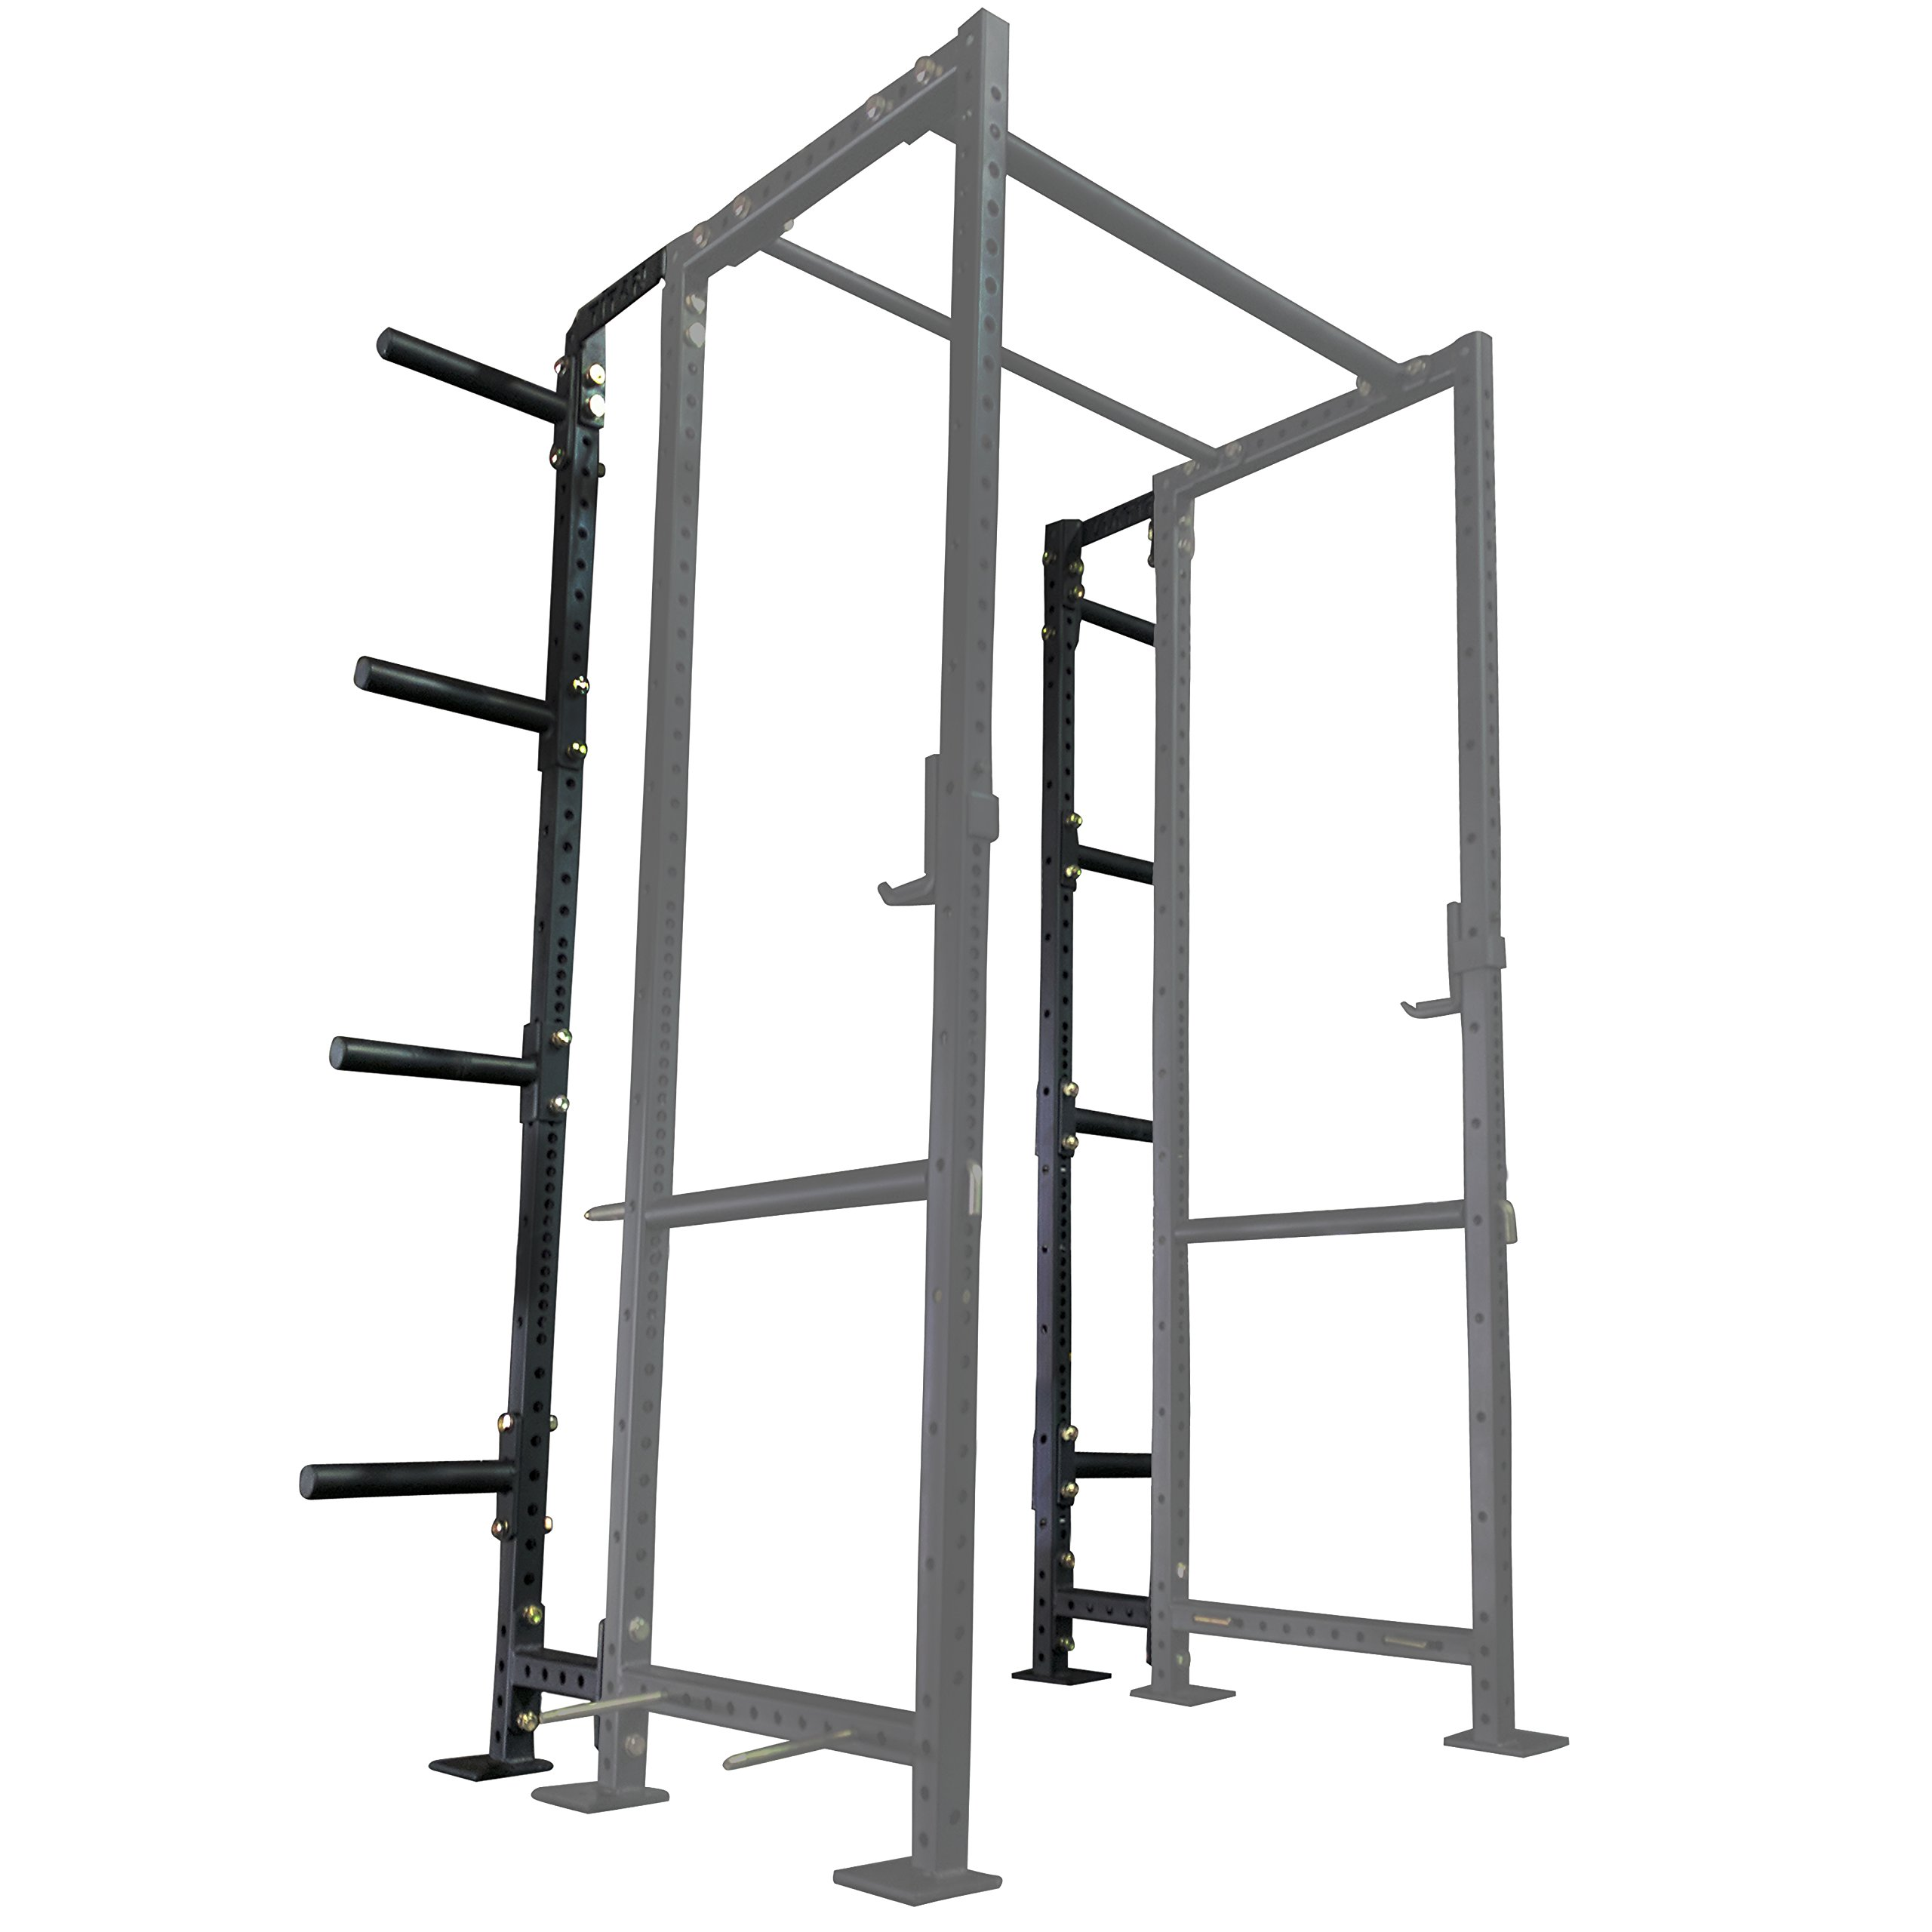 10'' Extension Kit for X-2 Power Rack